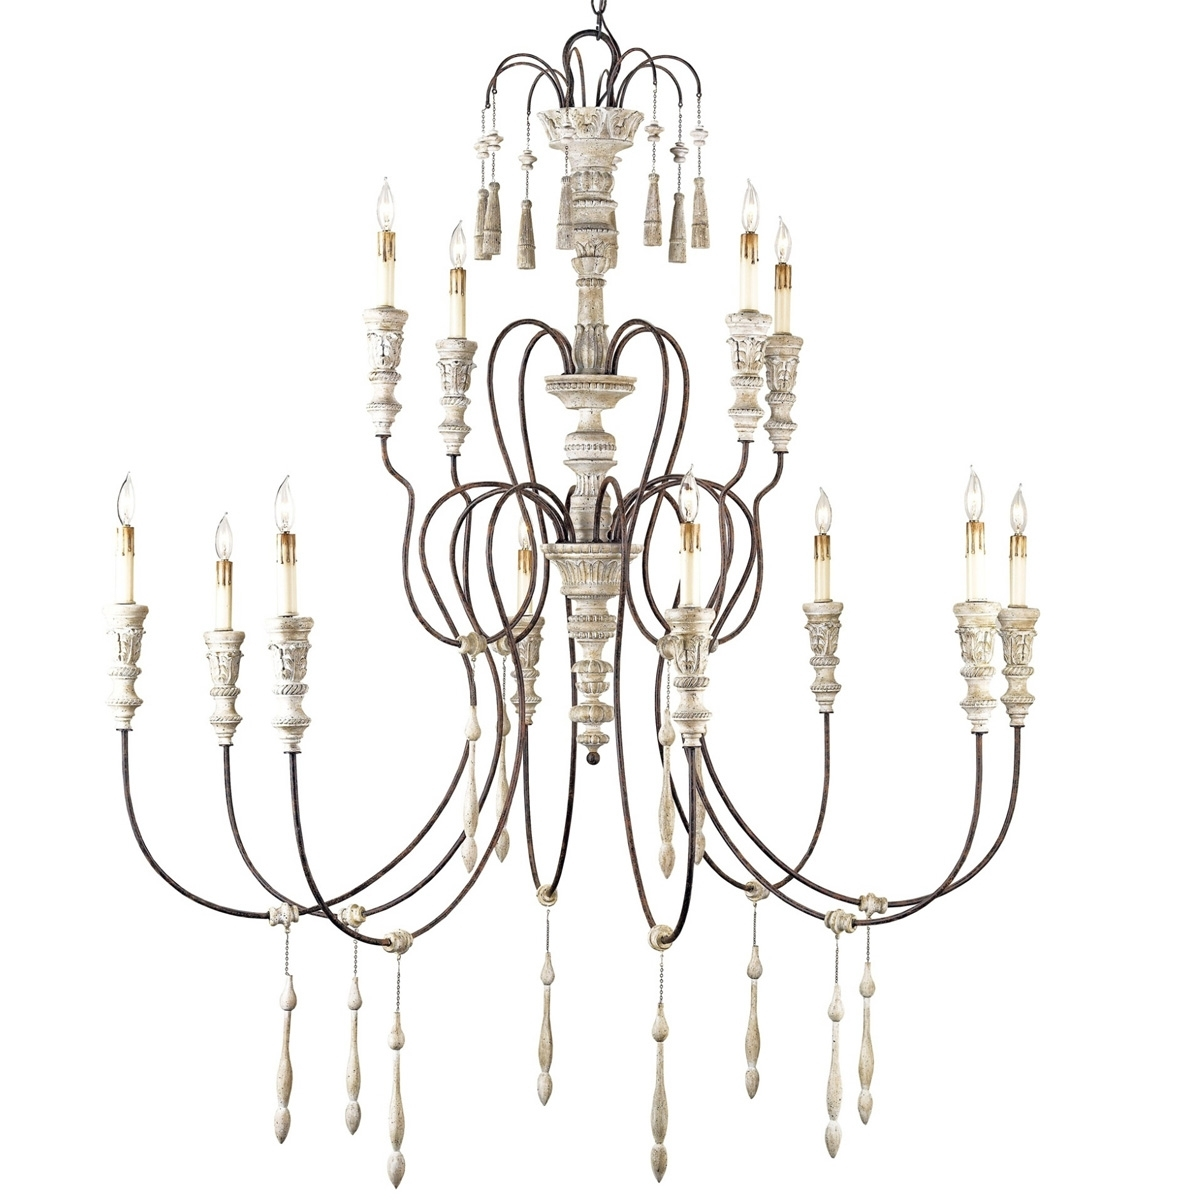 Shabby Chic Chandeliers – Chandelier Designs Within Fashionable Country Chic Chandelier (View 5 of 15)